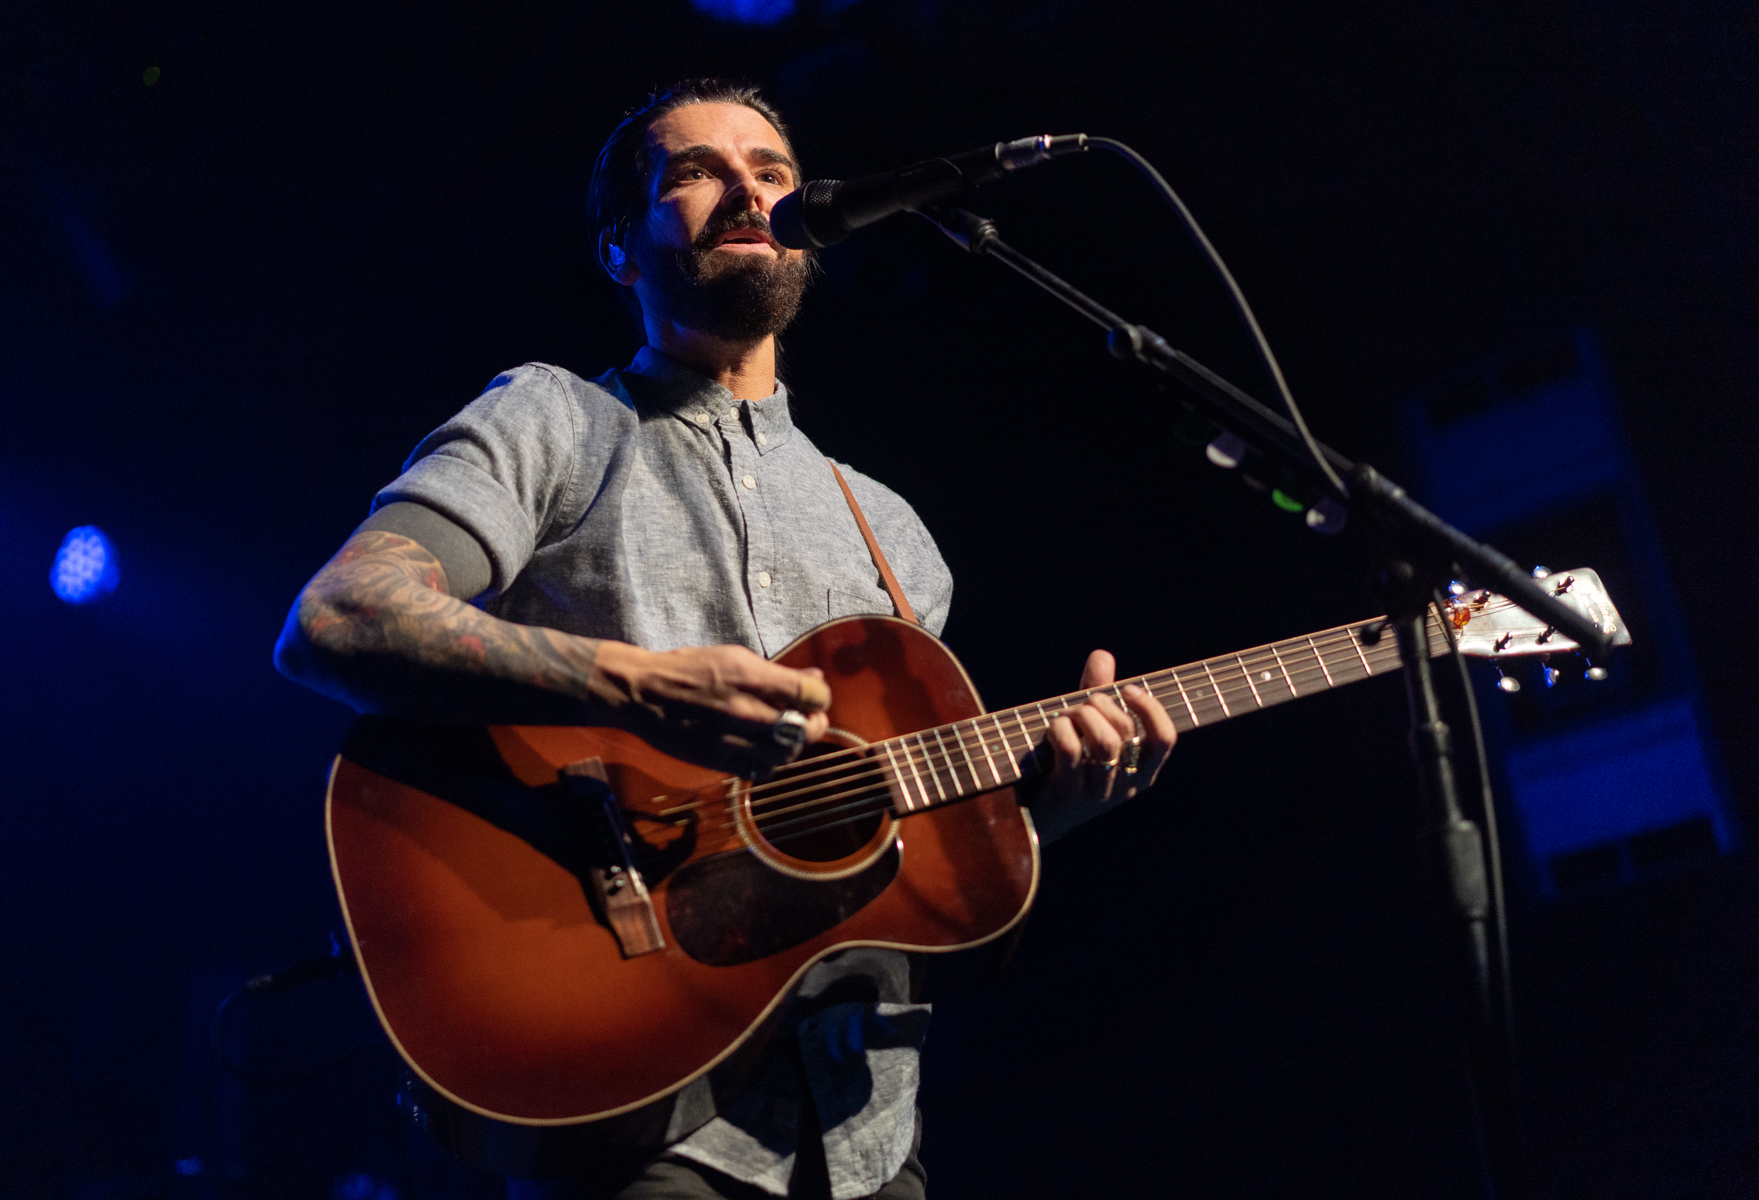 DashboardConfessional_FirstAvenue_022520_ChristopherGoyette_15